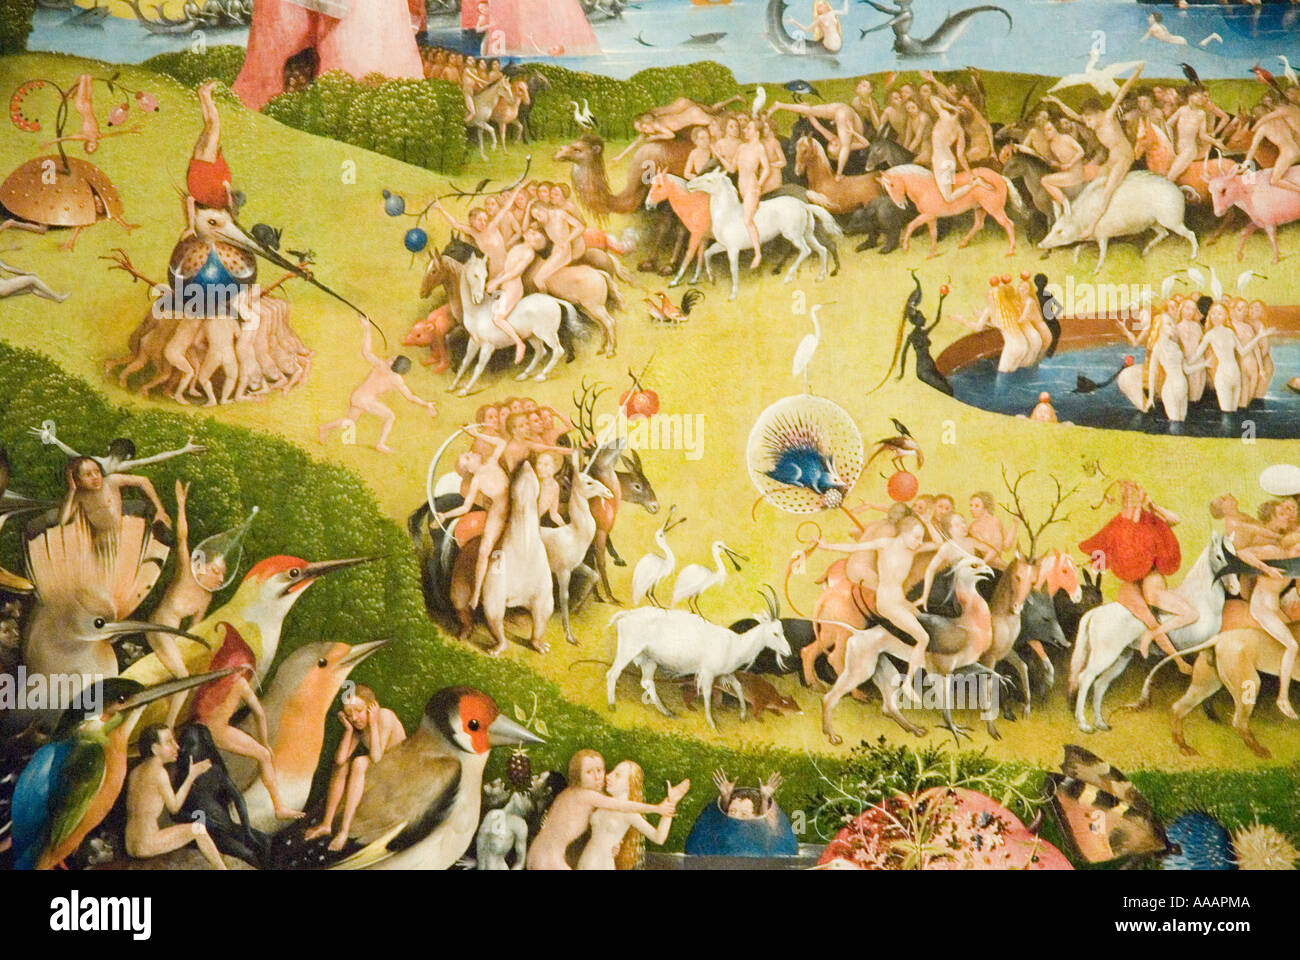 The Garden Of Earthly Delights Painting By Hieronymus Bosch Stock